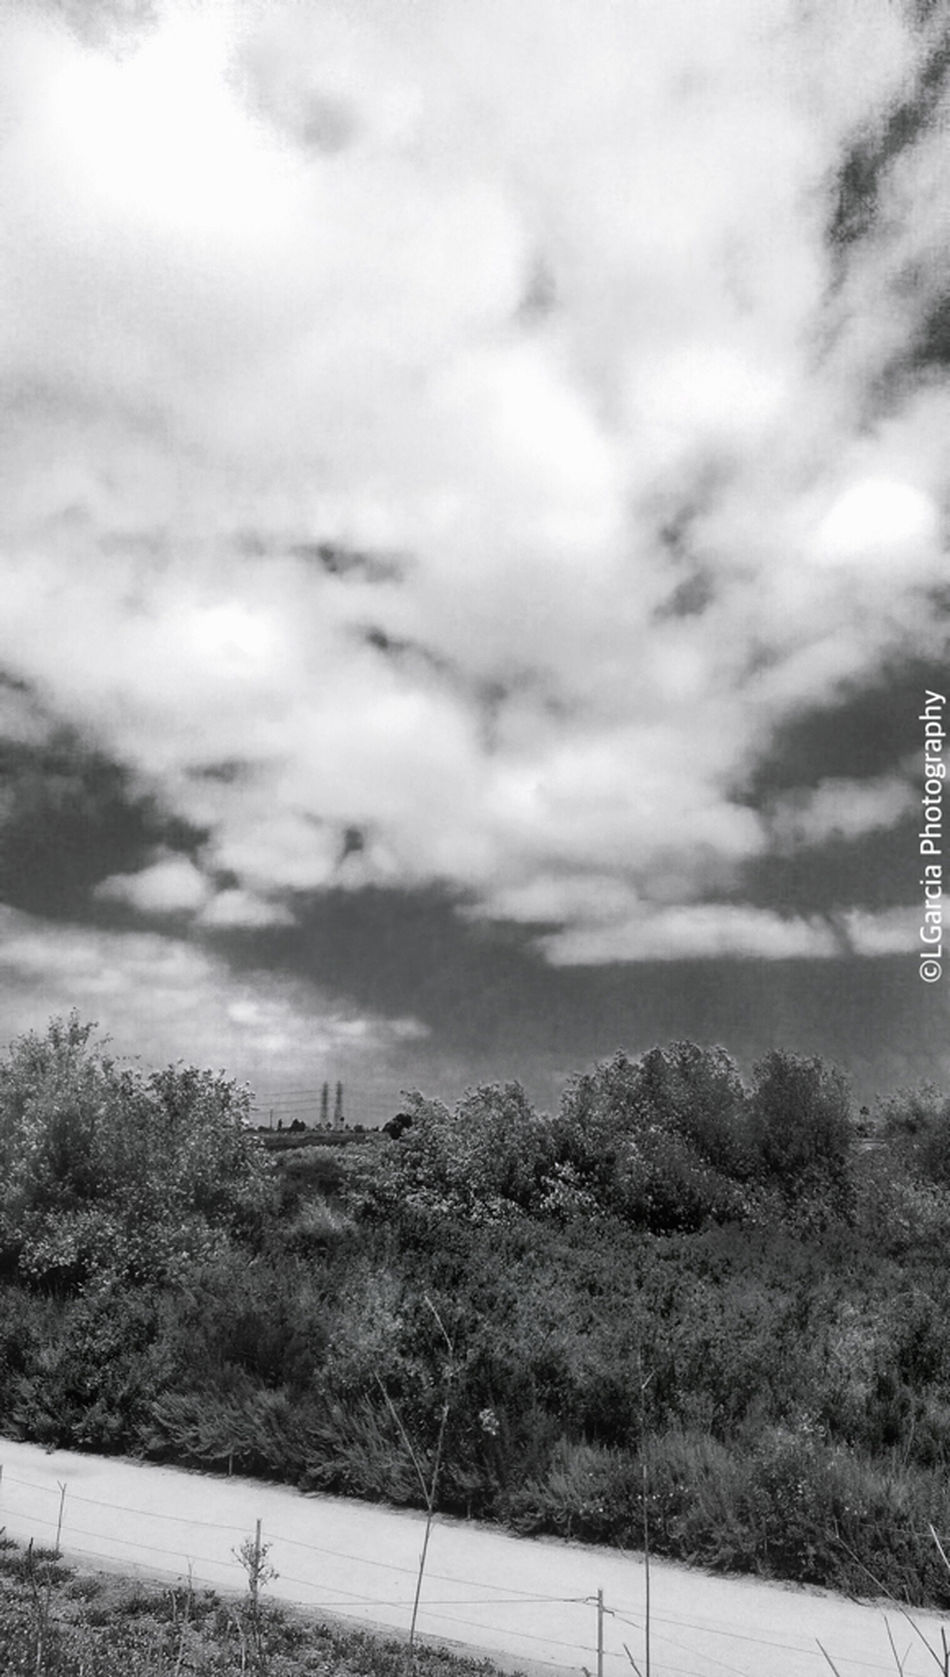 Fairview park in Orange County. Fairviewpark Fairview Park EyeEm Best Edits Urban Photography Clouds And Sky EyeEm Best Shots Monochrome Eye4black&white  Black And White Blackandwhite Photography LGarciaPhotography EyeEm Best Shots - Black + White Iphone 6 Plus Eye4photography  Hdr_Collection IPhone Iphonephotography Nature Nature_collection EyeEm Nature Lover Nature Photography IPhone Photography Light And Shadow HDR